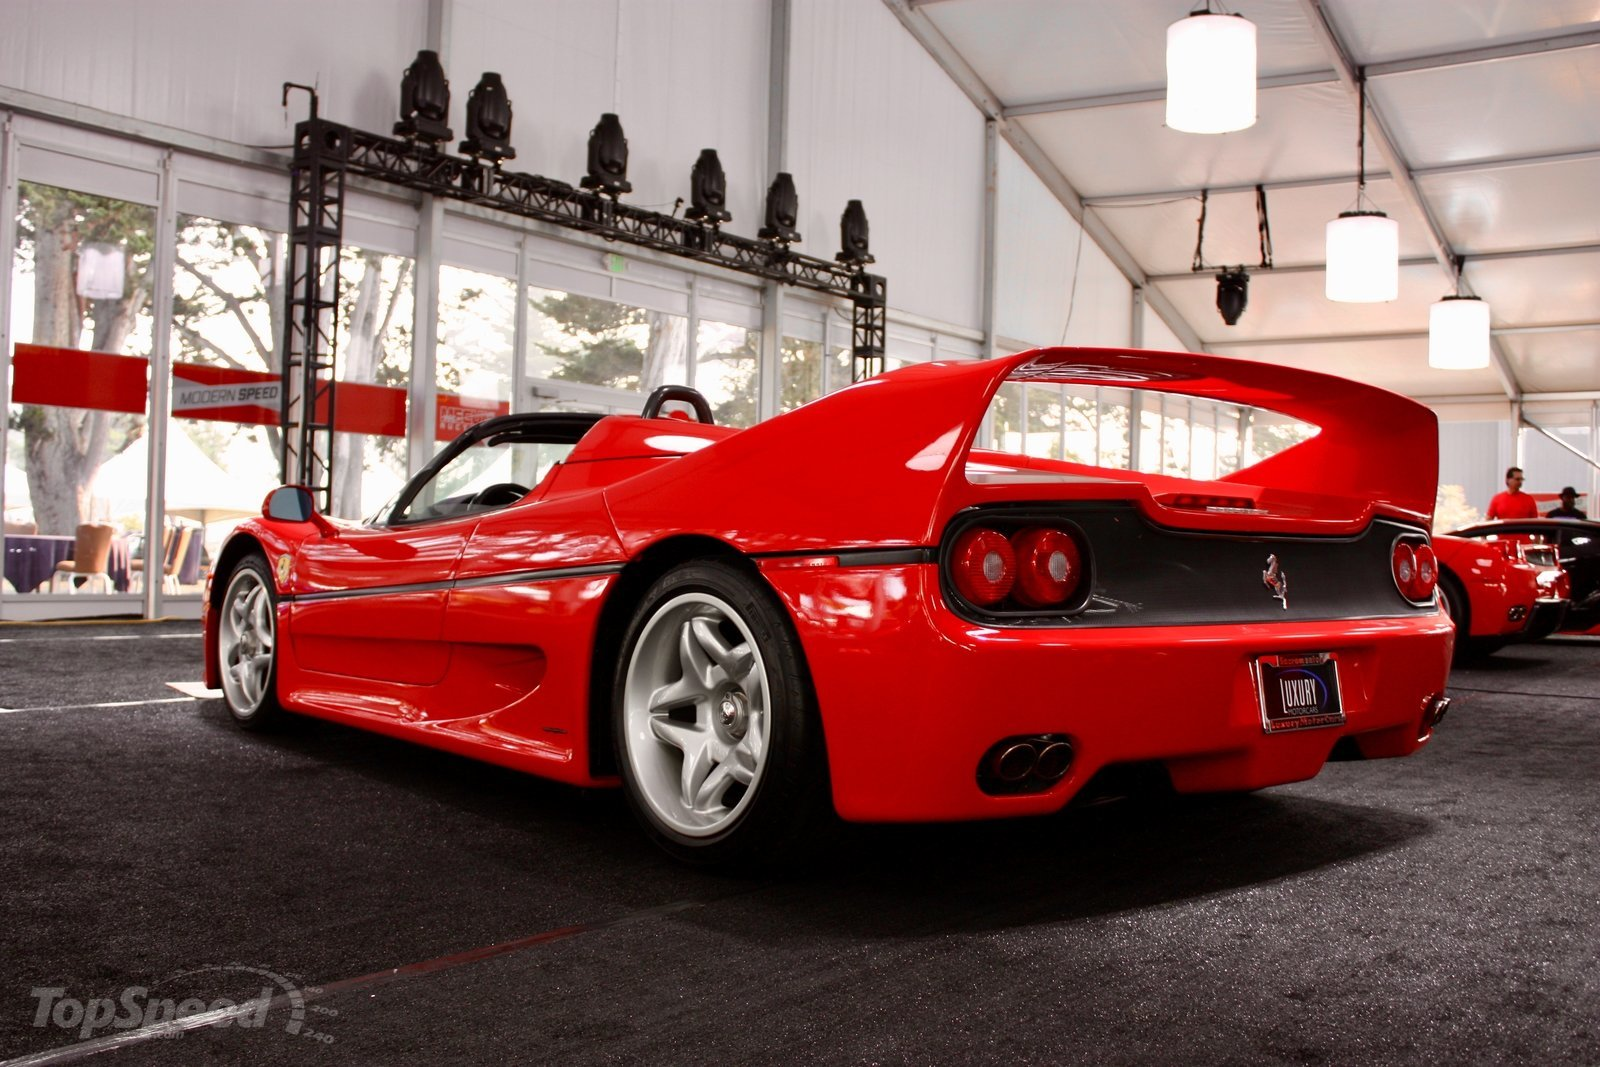 Ferrari F50 Latest News Reviews Specifications Prices Photos And Videos Top Speed